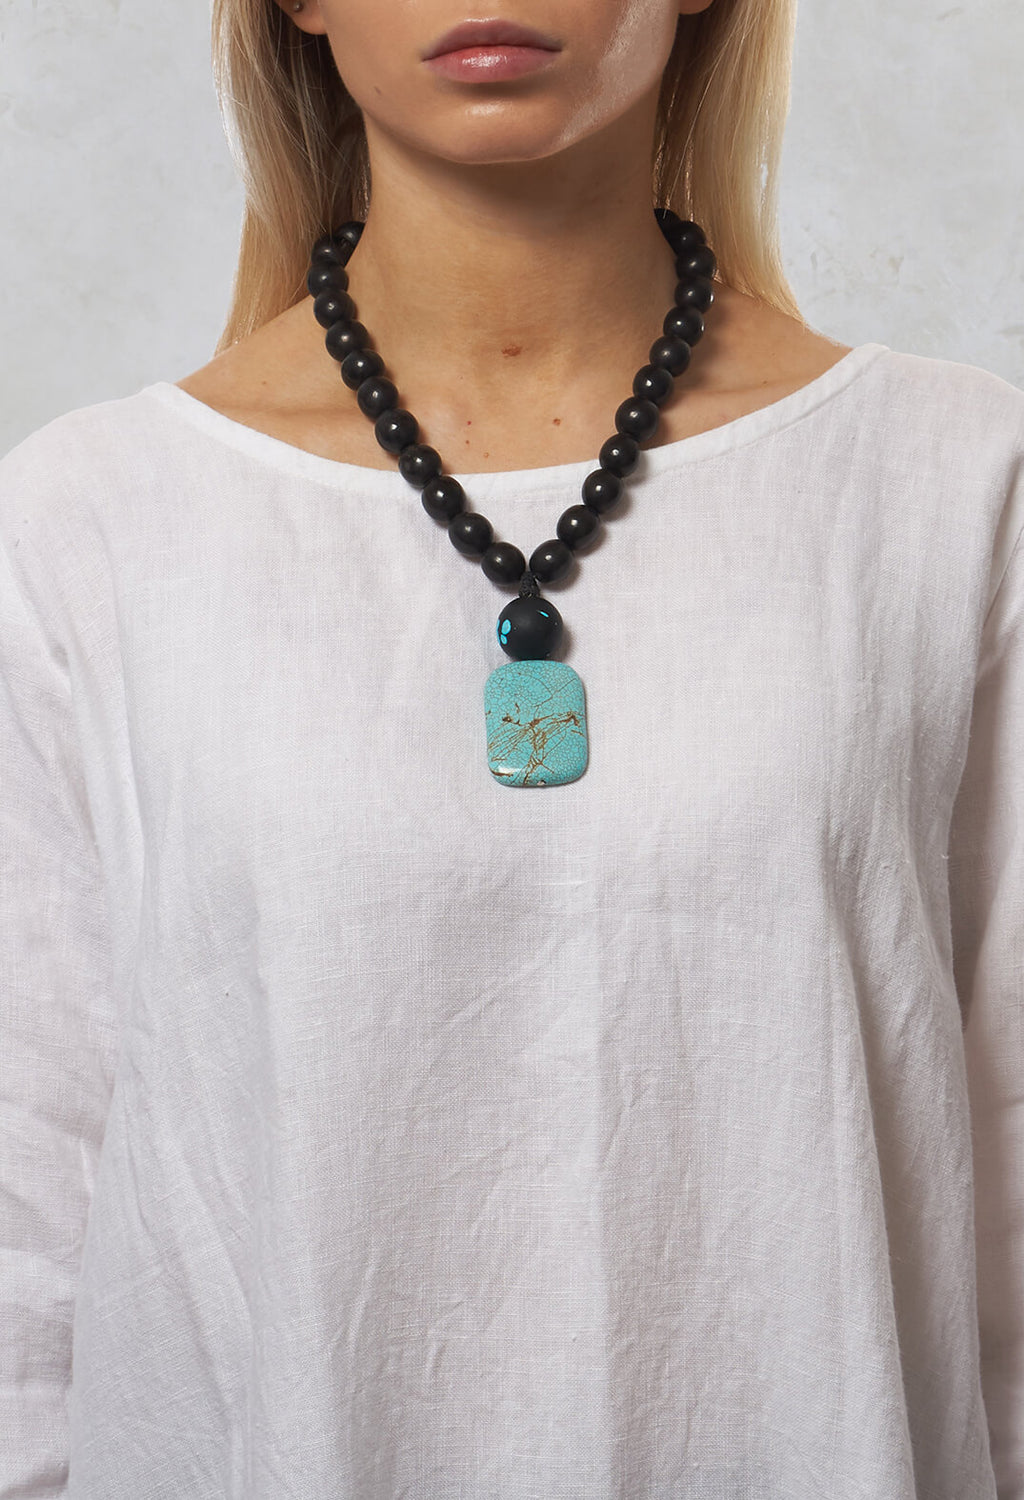 Beaded Pendant Necklace in Black / Turquoise